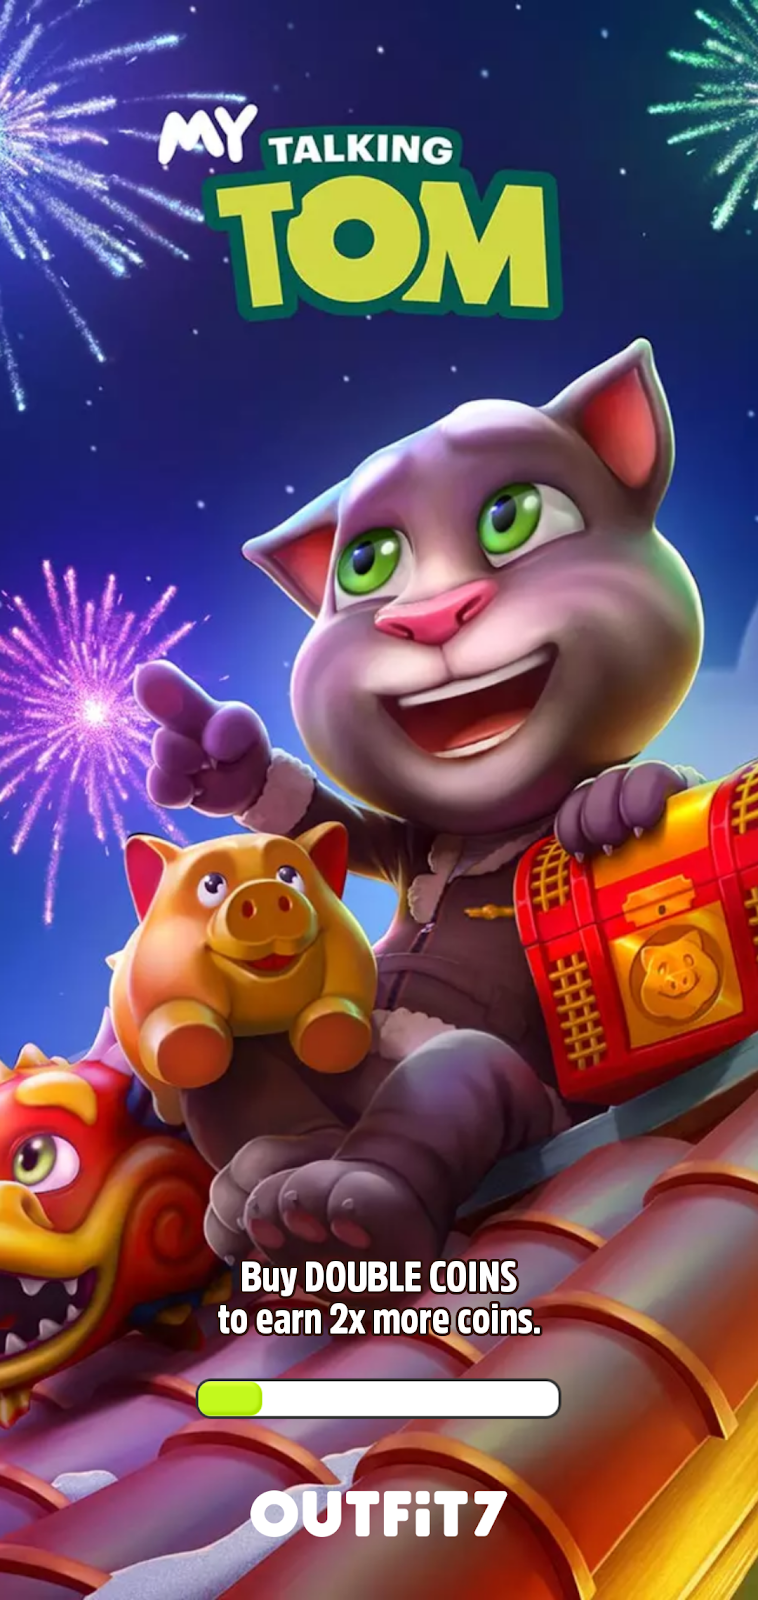 My Talking Tom Mod Apk Version 5 3 2 382 Unlimited Money - Technical